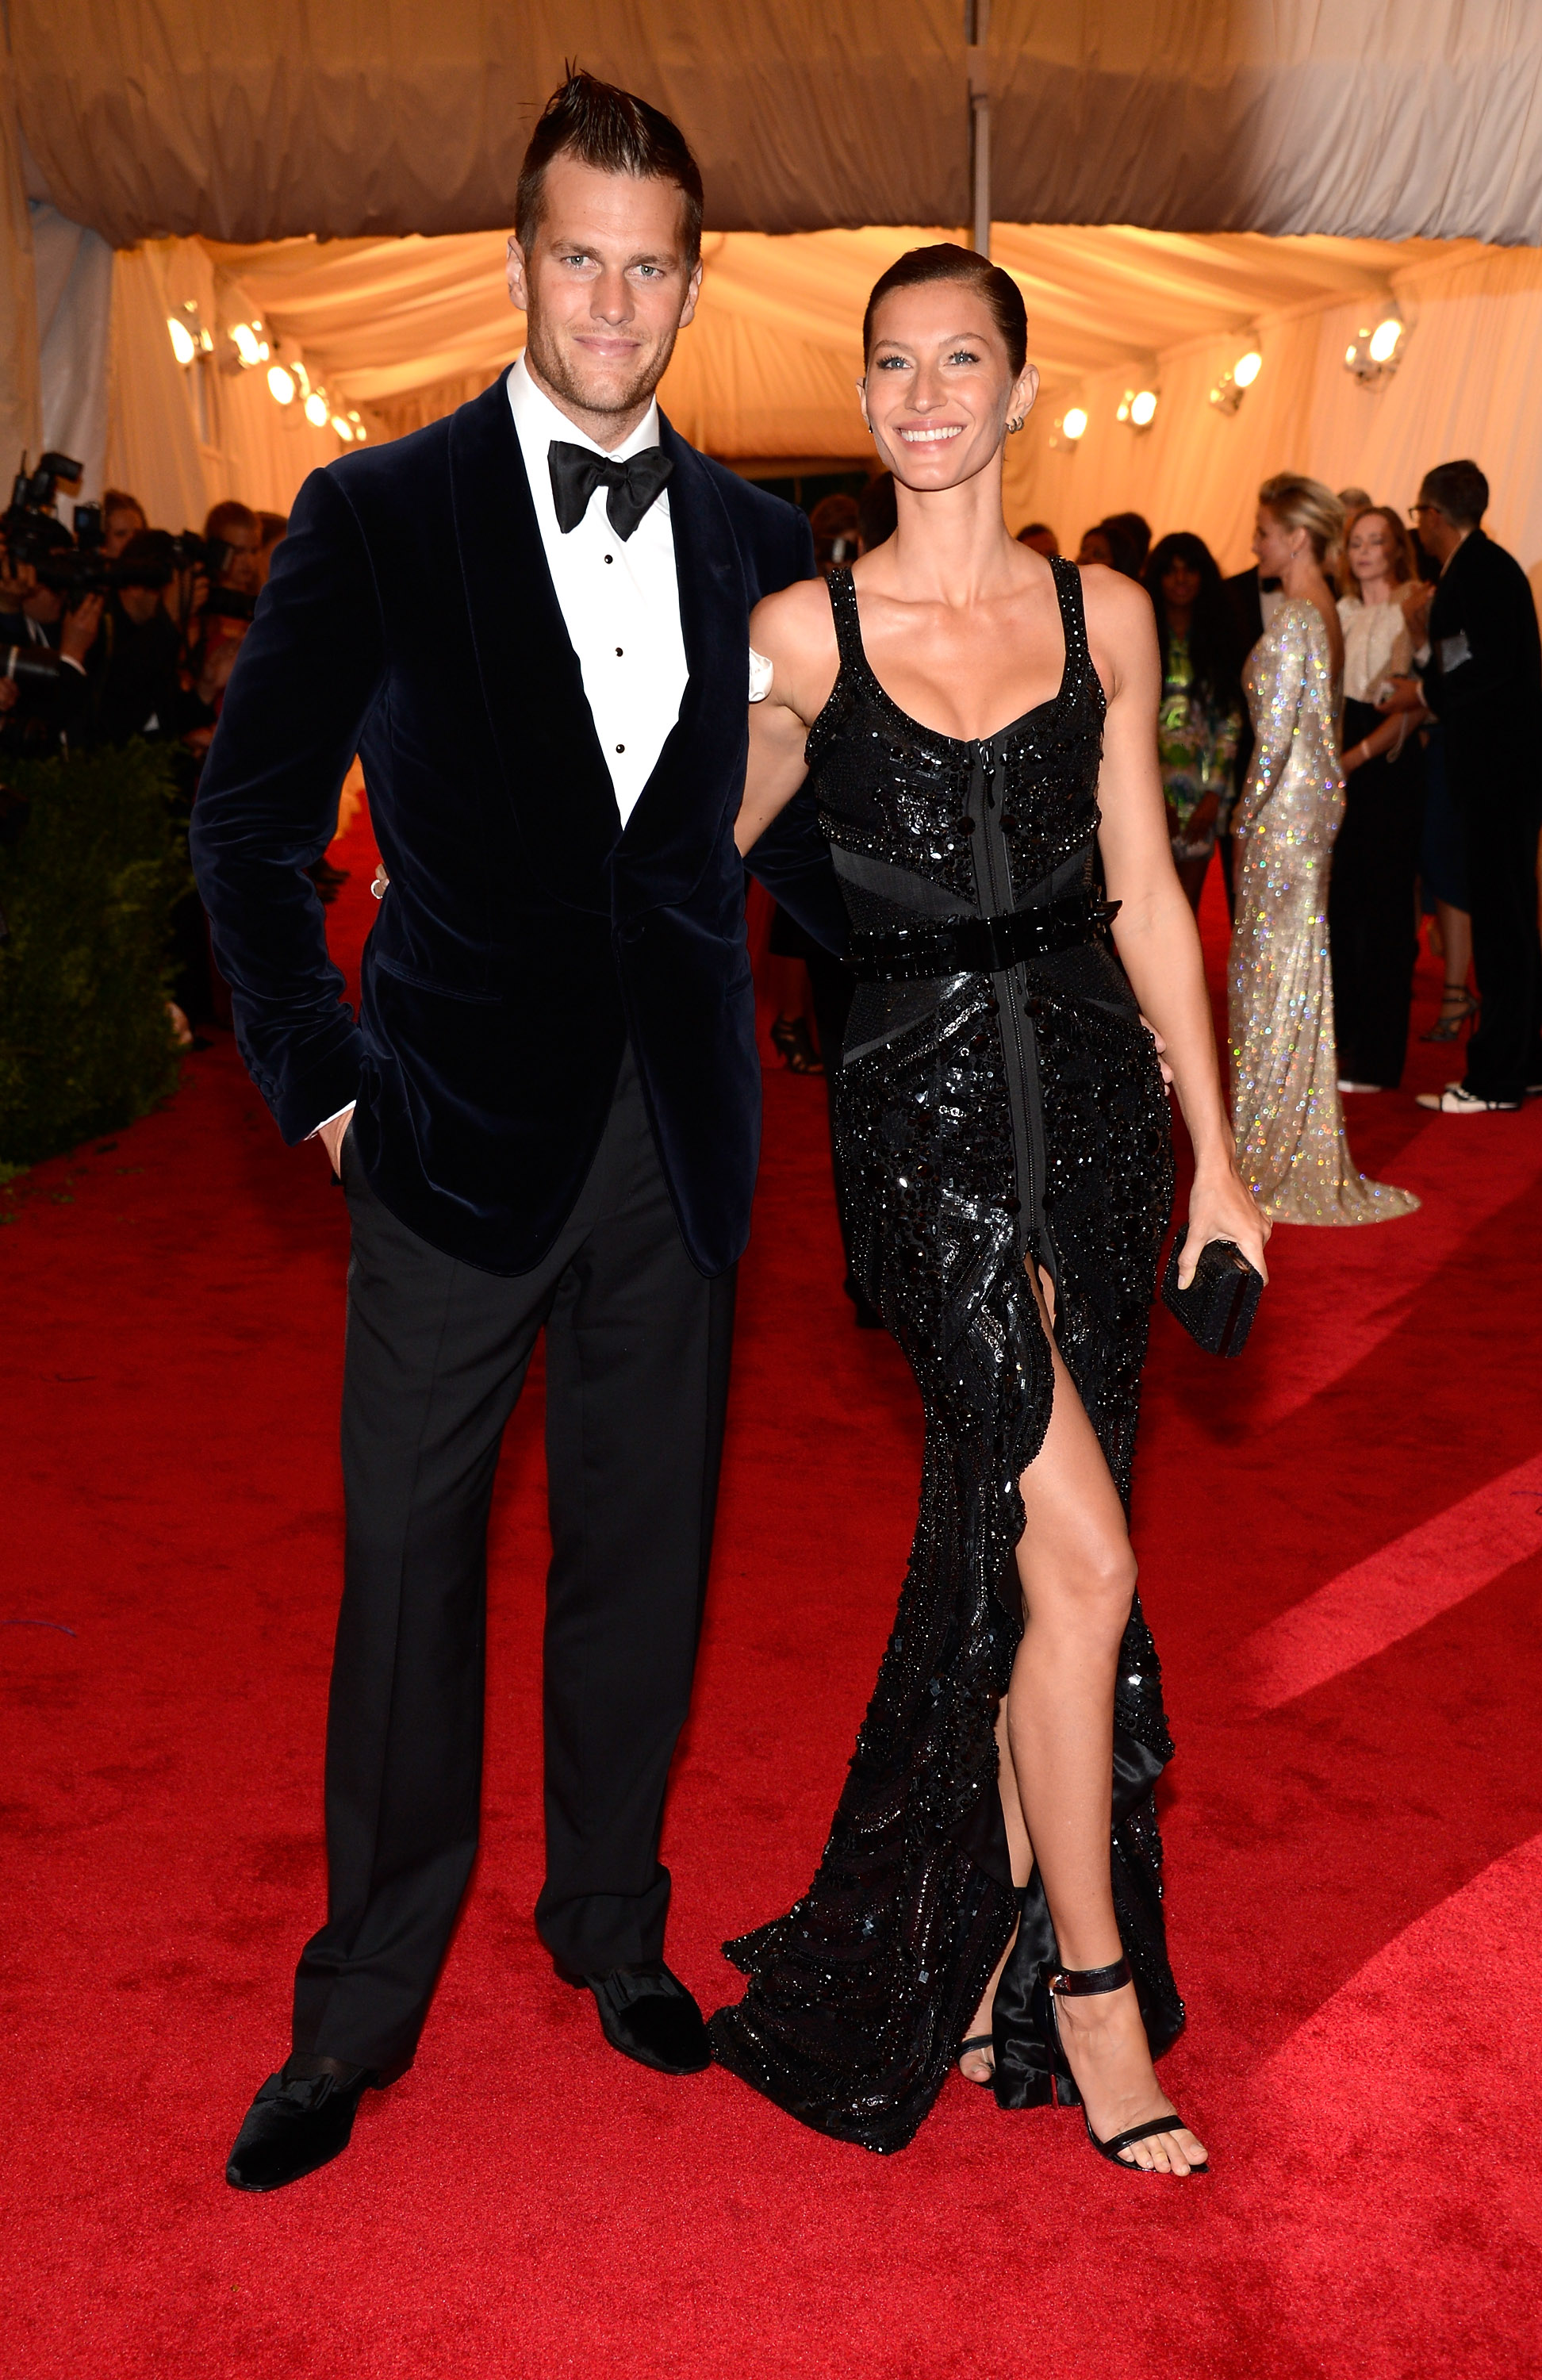 NEW YORK, NY - MAY 07: Tom Brady and Gisele Bundchen attend the  Schiaparelli And Prada: Impossible Conversations  Costume Institute Gala at the Metropolitan Museum of Art on May 7, 2012 in New York City. (Photo by Kevin Mazur/WireImage)